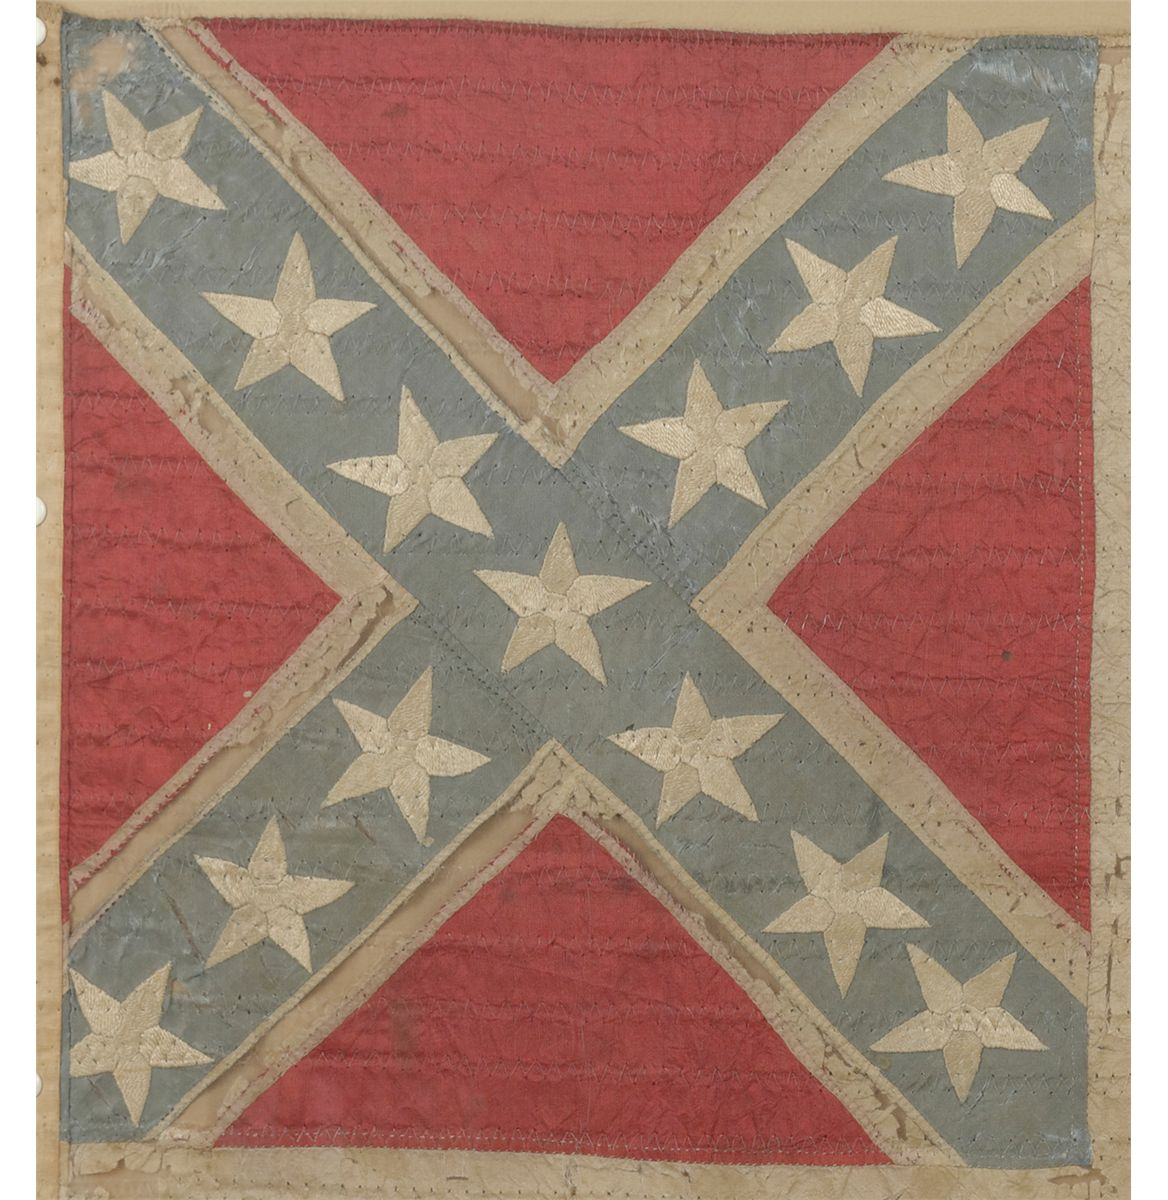 authentic confederate flag with provenance to chicago historical